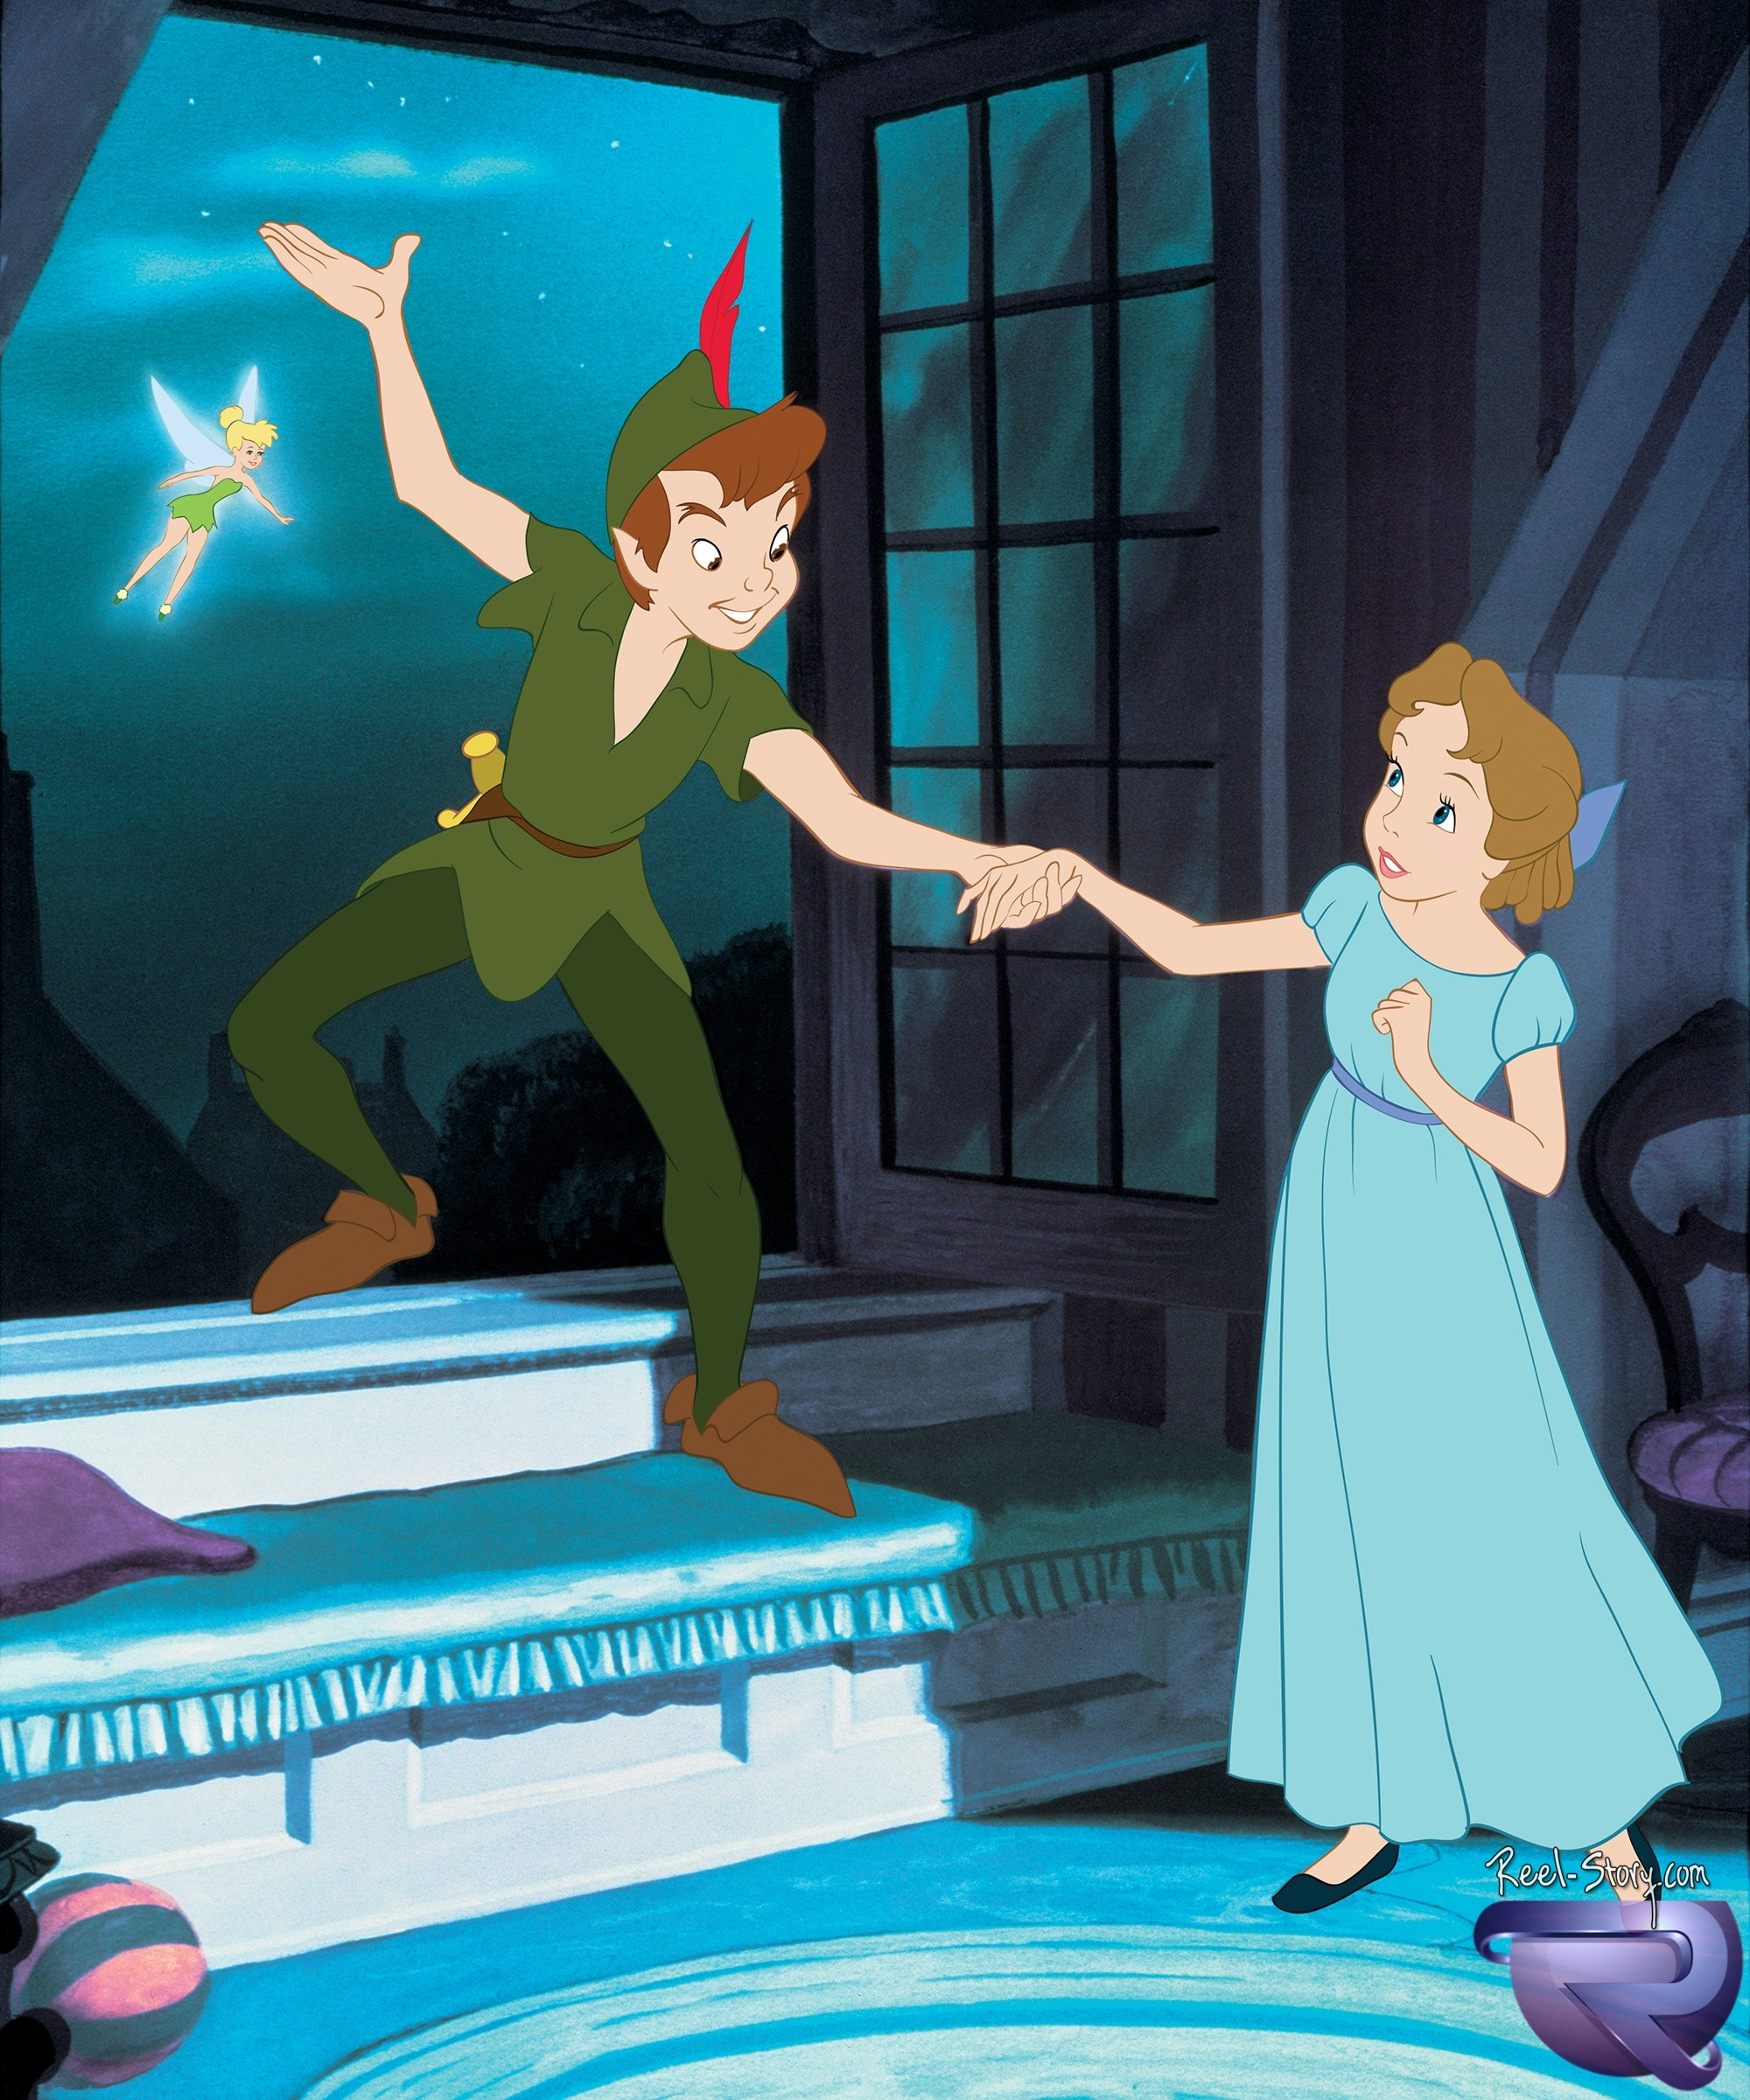 Peter Pan – J. M. Barrie